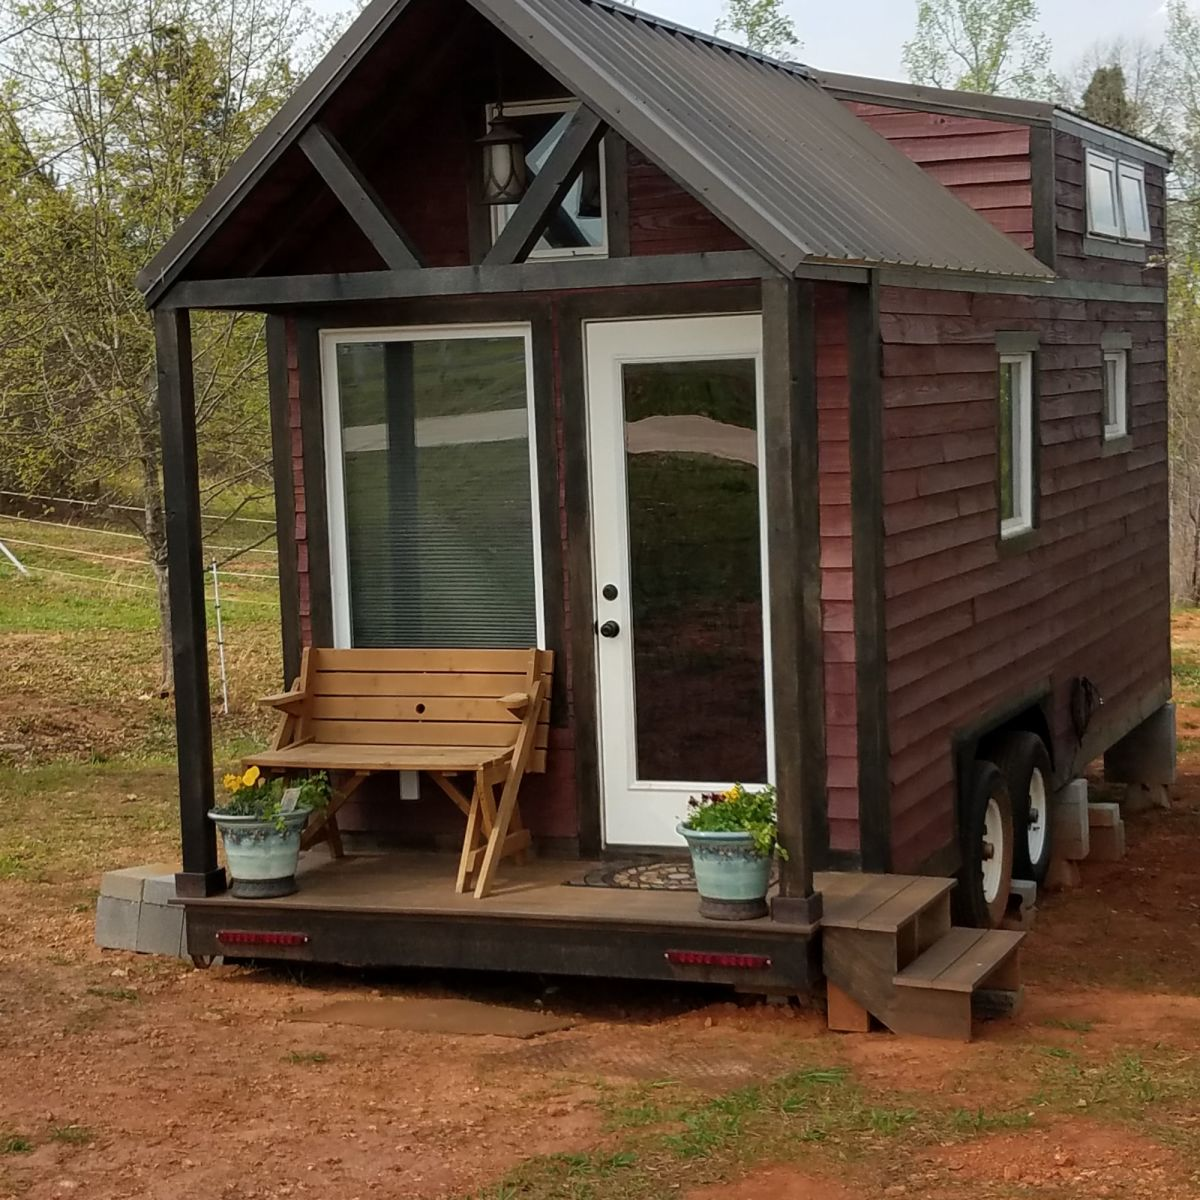 Sale Pending The Cedar Delight Thow Tiny House For Sale